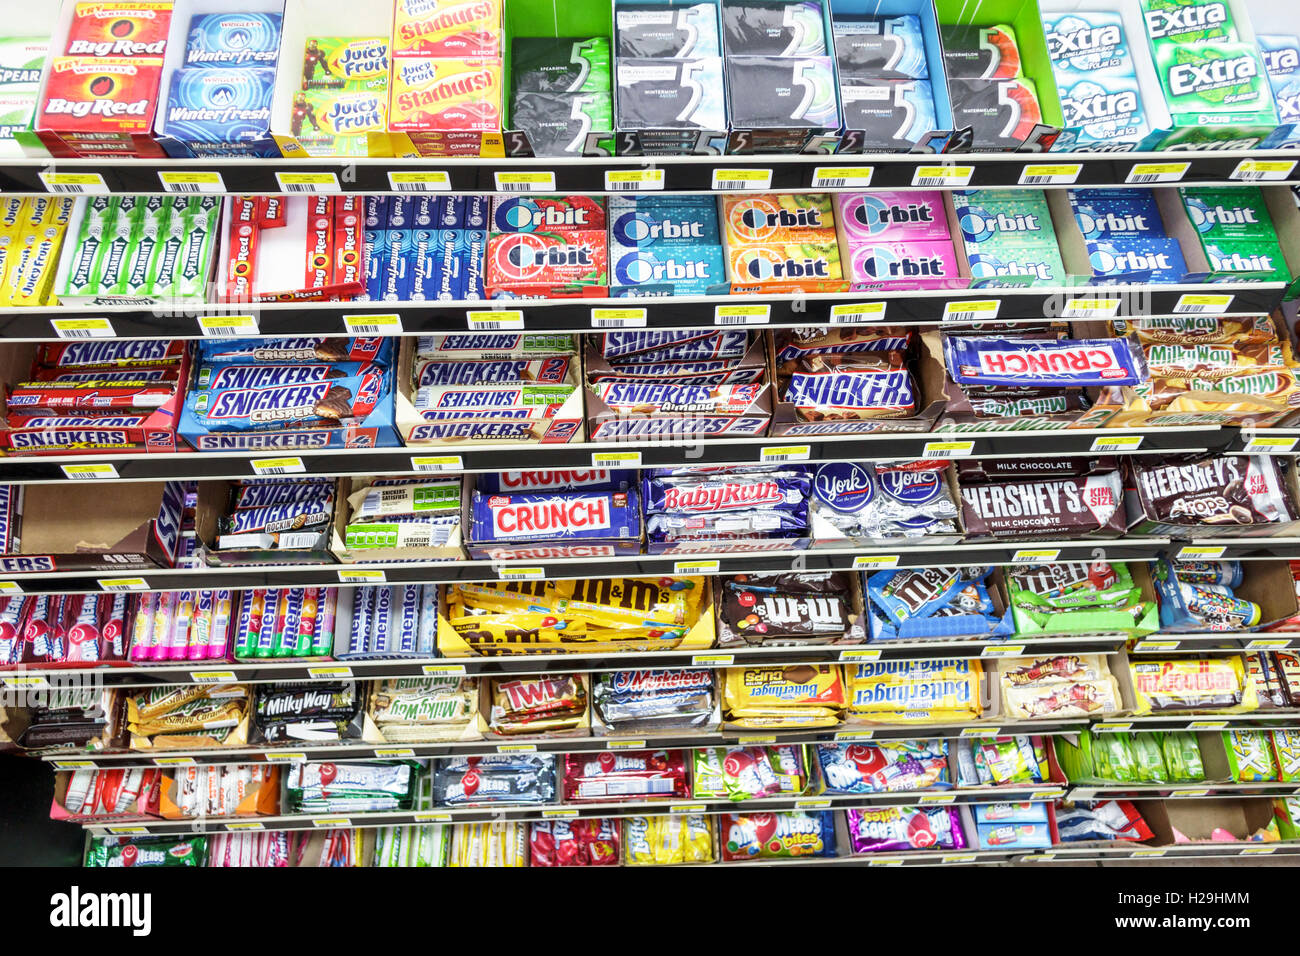 miami florida convenience store candy gum junk food